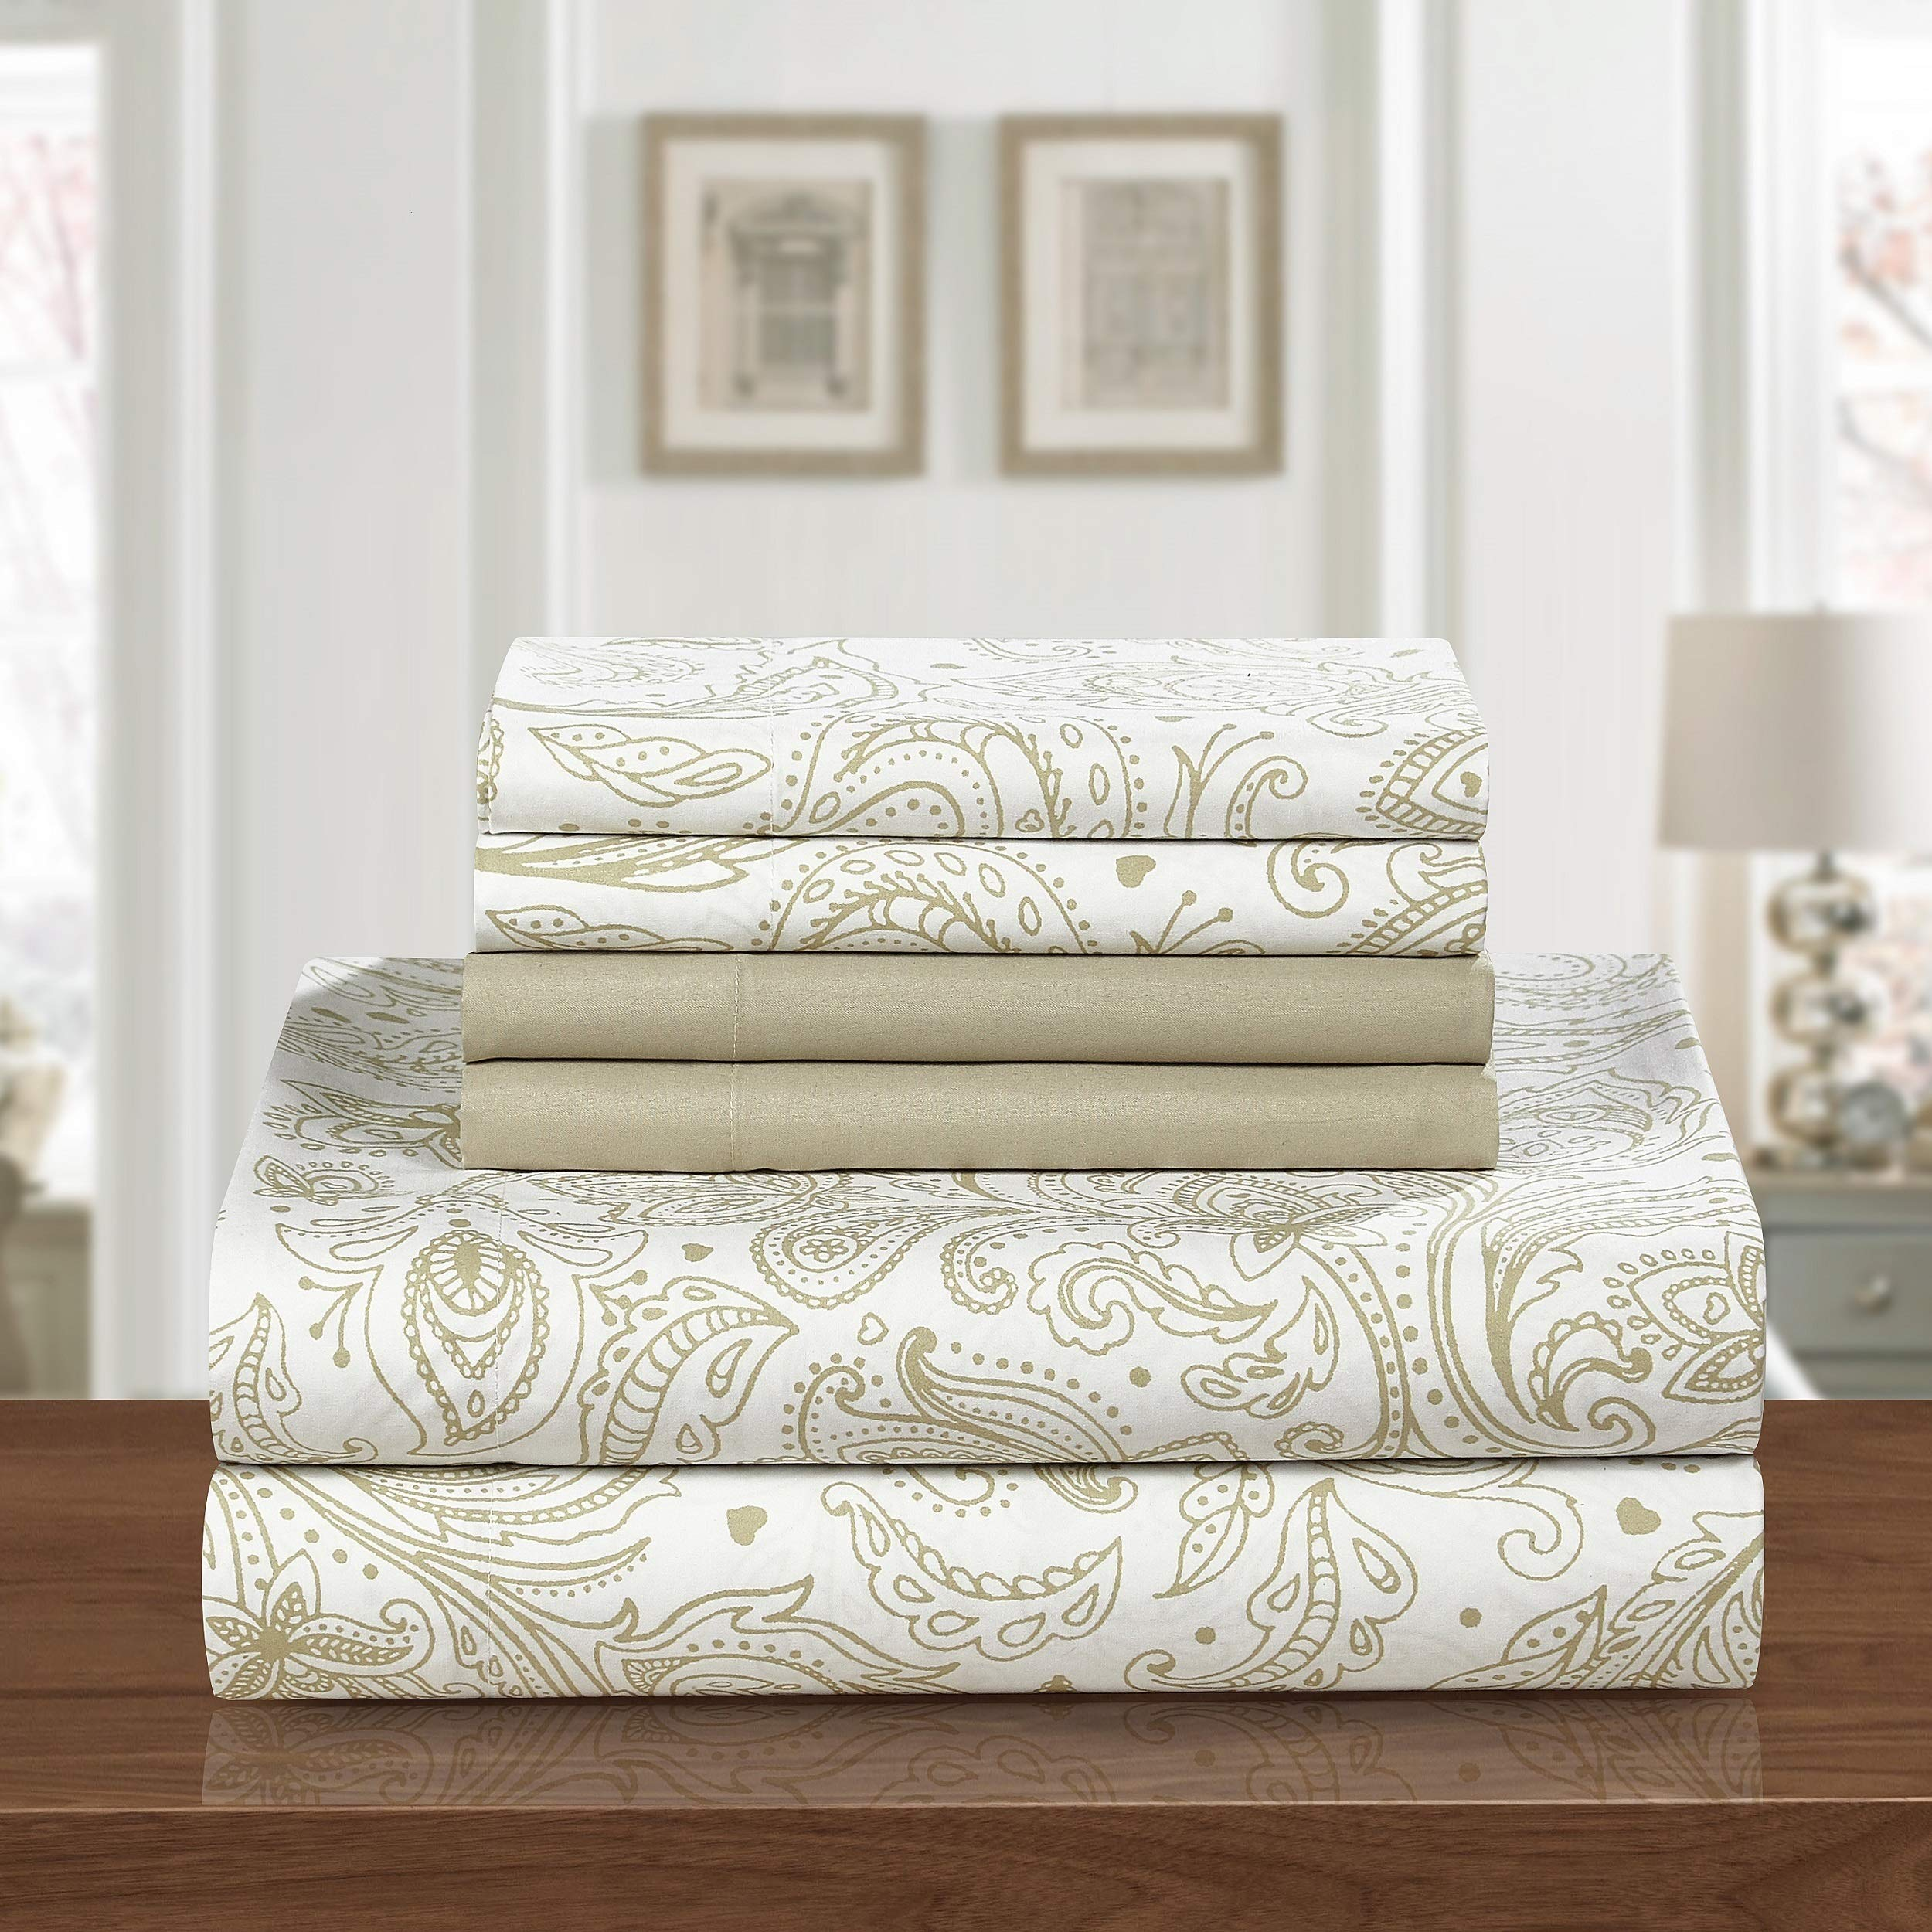 PH 6 Piece Queen Beige Brown Printed Sheet Set, Country & Vintage Style, Microfiber Material, Paisley Pattern Deep Pockets, Fully Elasticized Fitted, Machine Wash - Floral Print